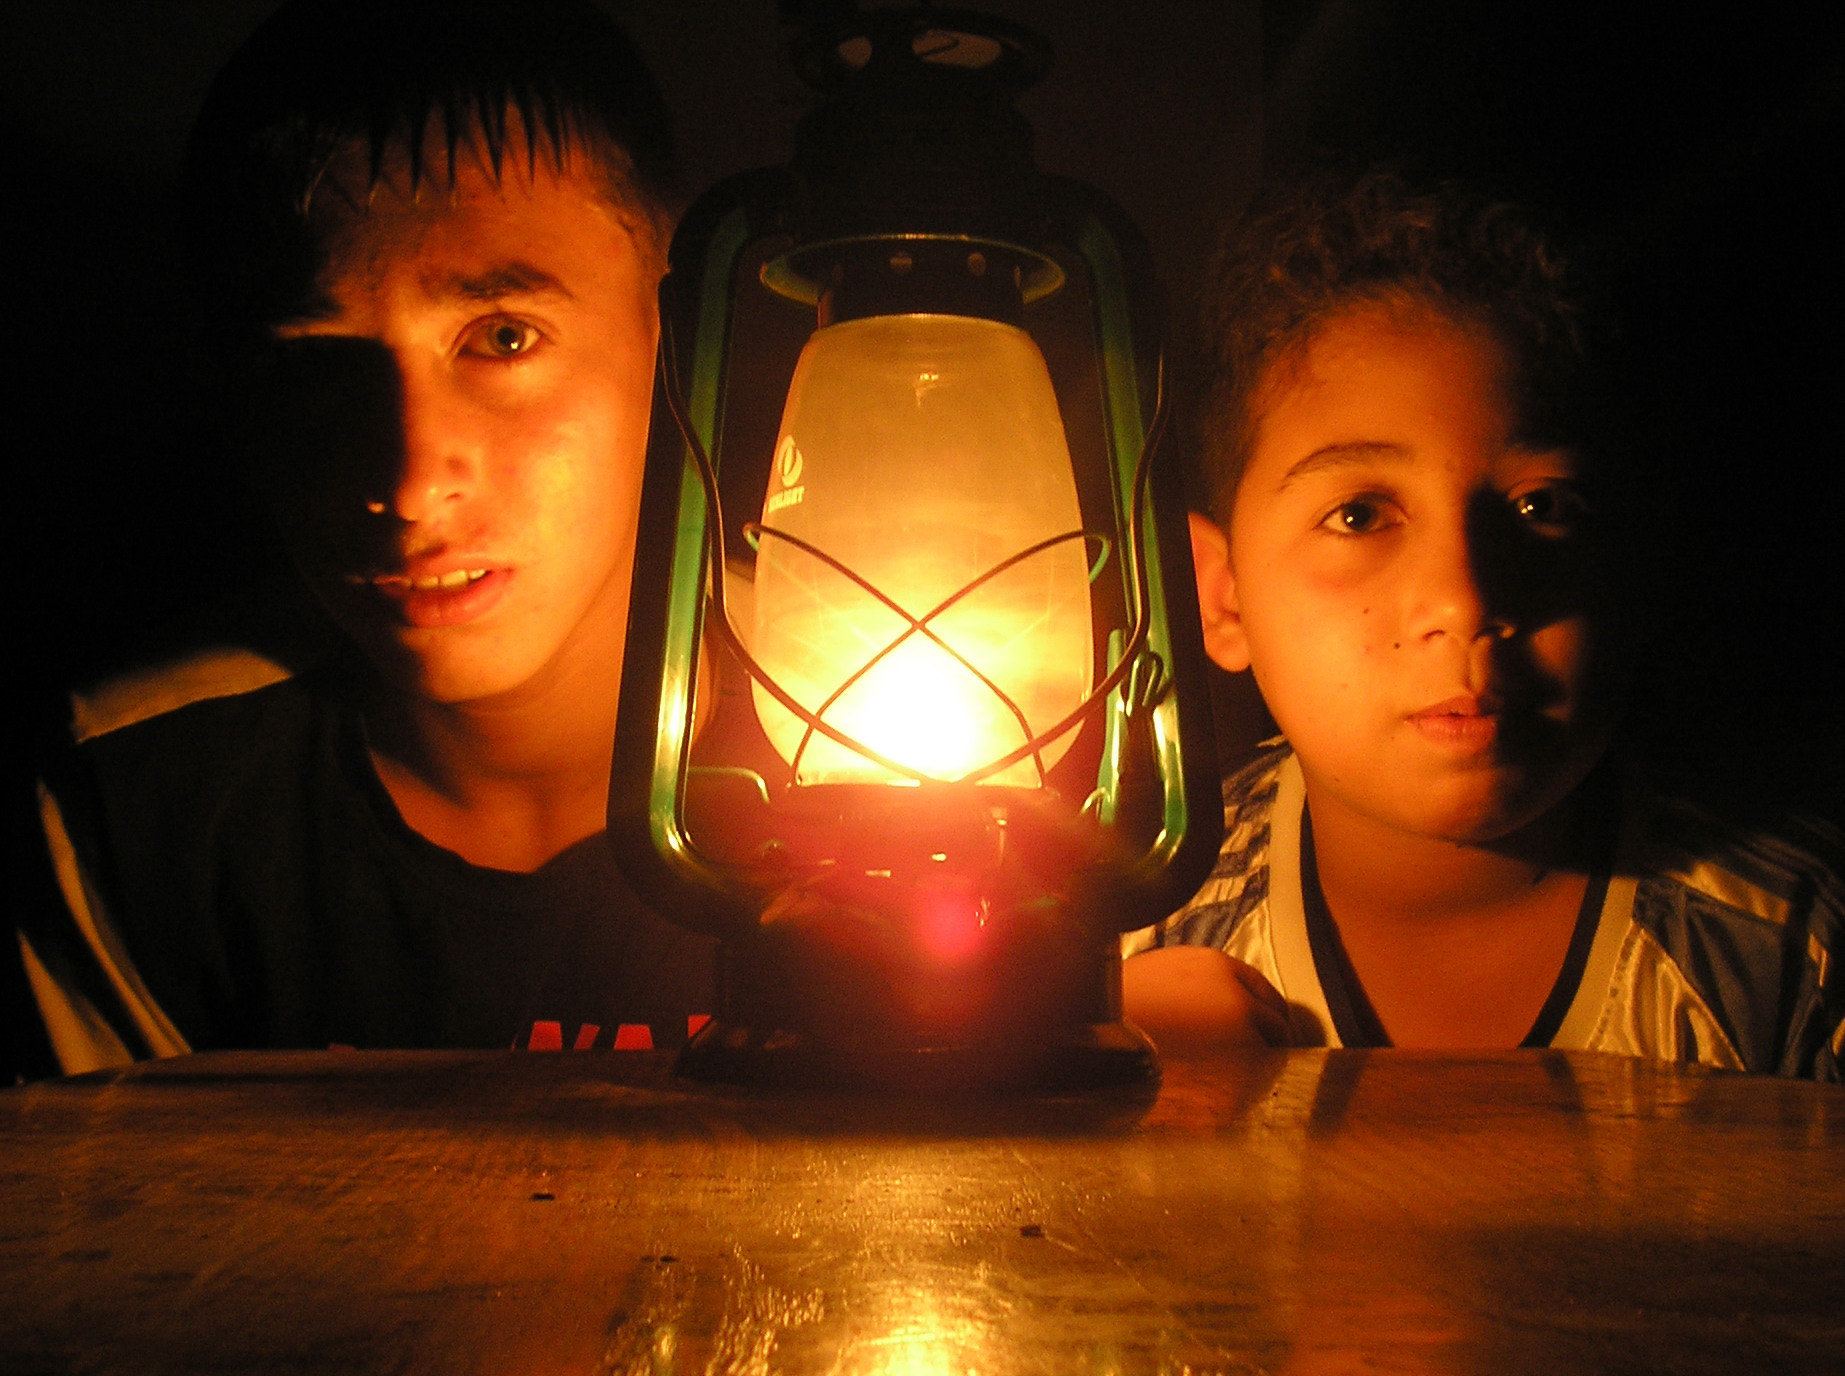 Ahmed, 14, and Amjad, 12, during a power cut in Tal Zaatar, Gaza